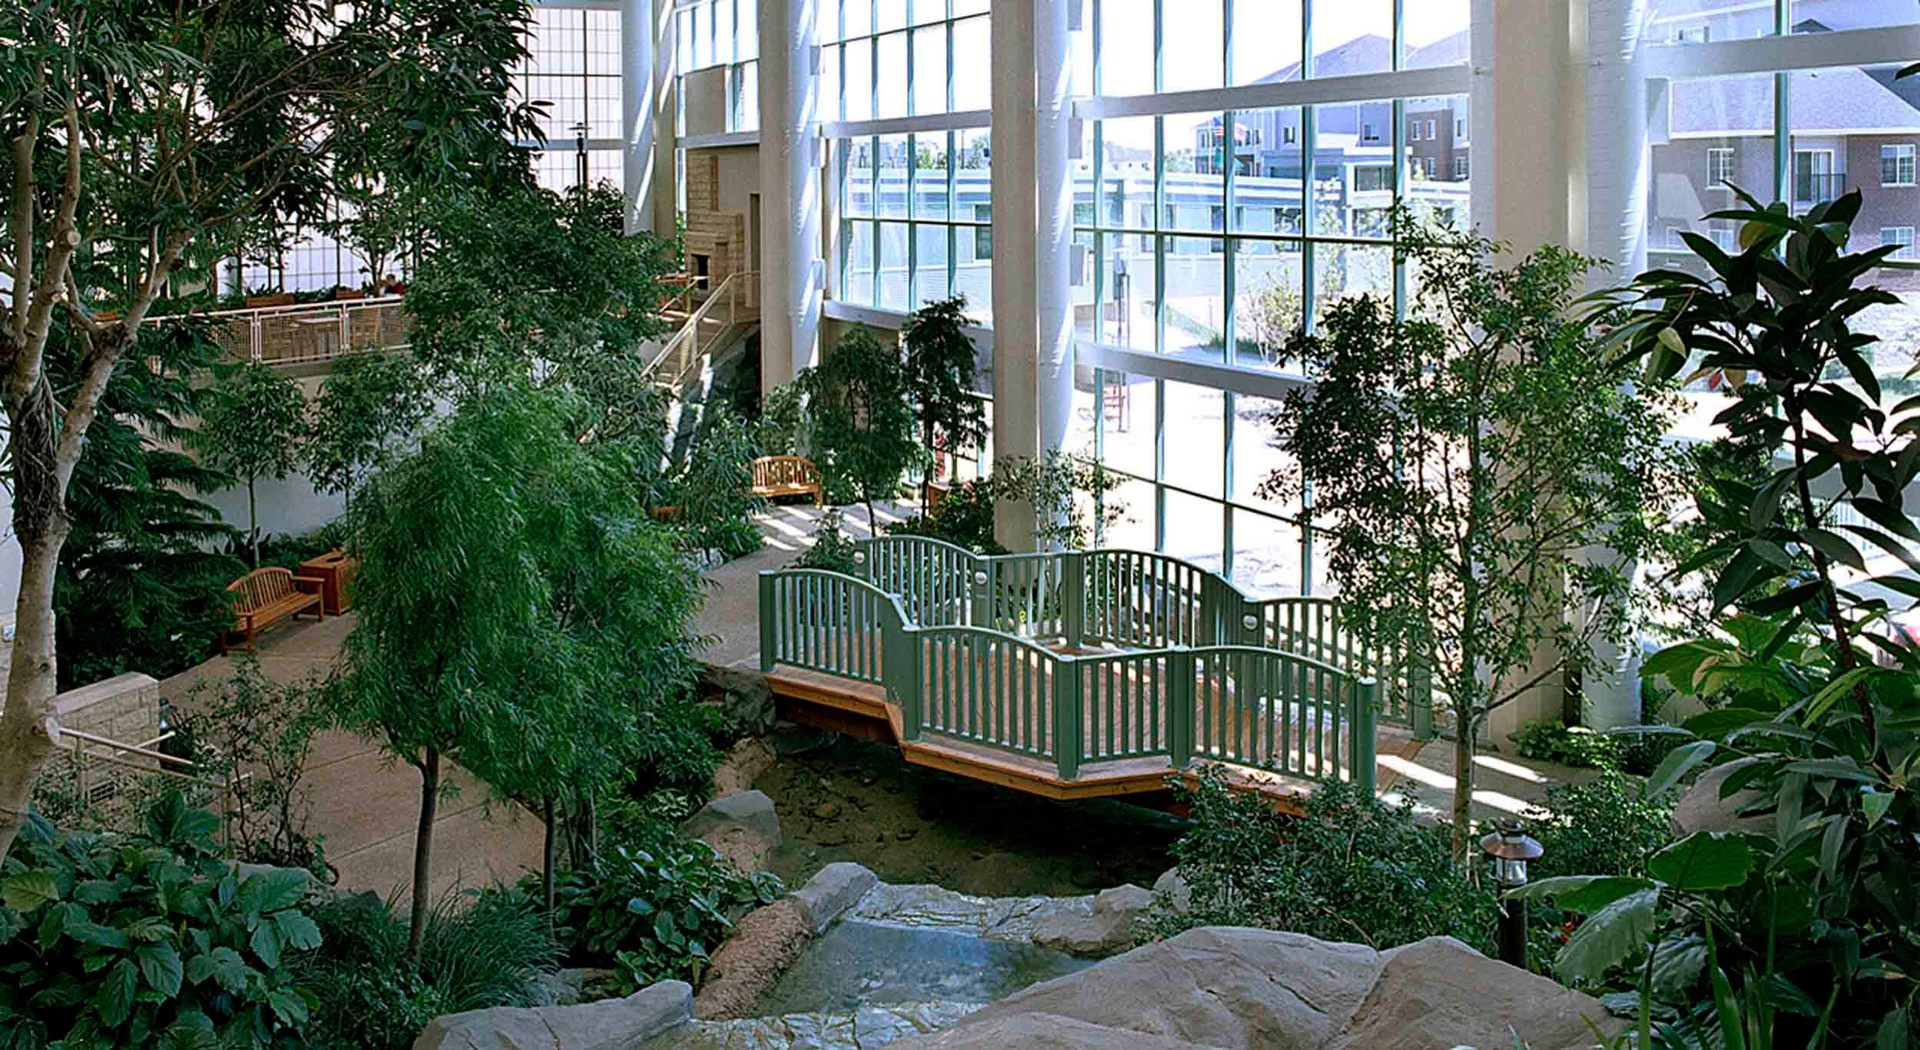 Interior landscaping taken to a whole other level. Shown here is an entire set-up of trees, various plants, and shrubbery which really make this space appear like you're outside.